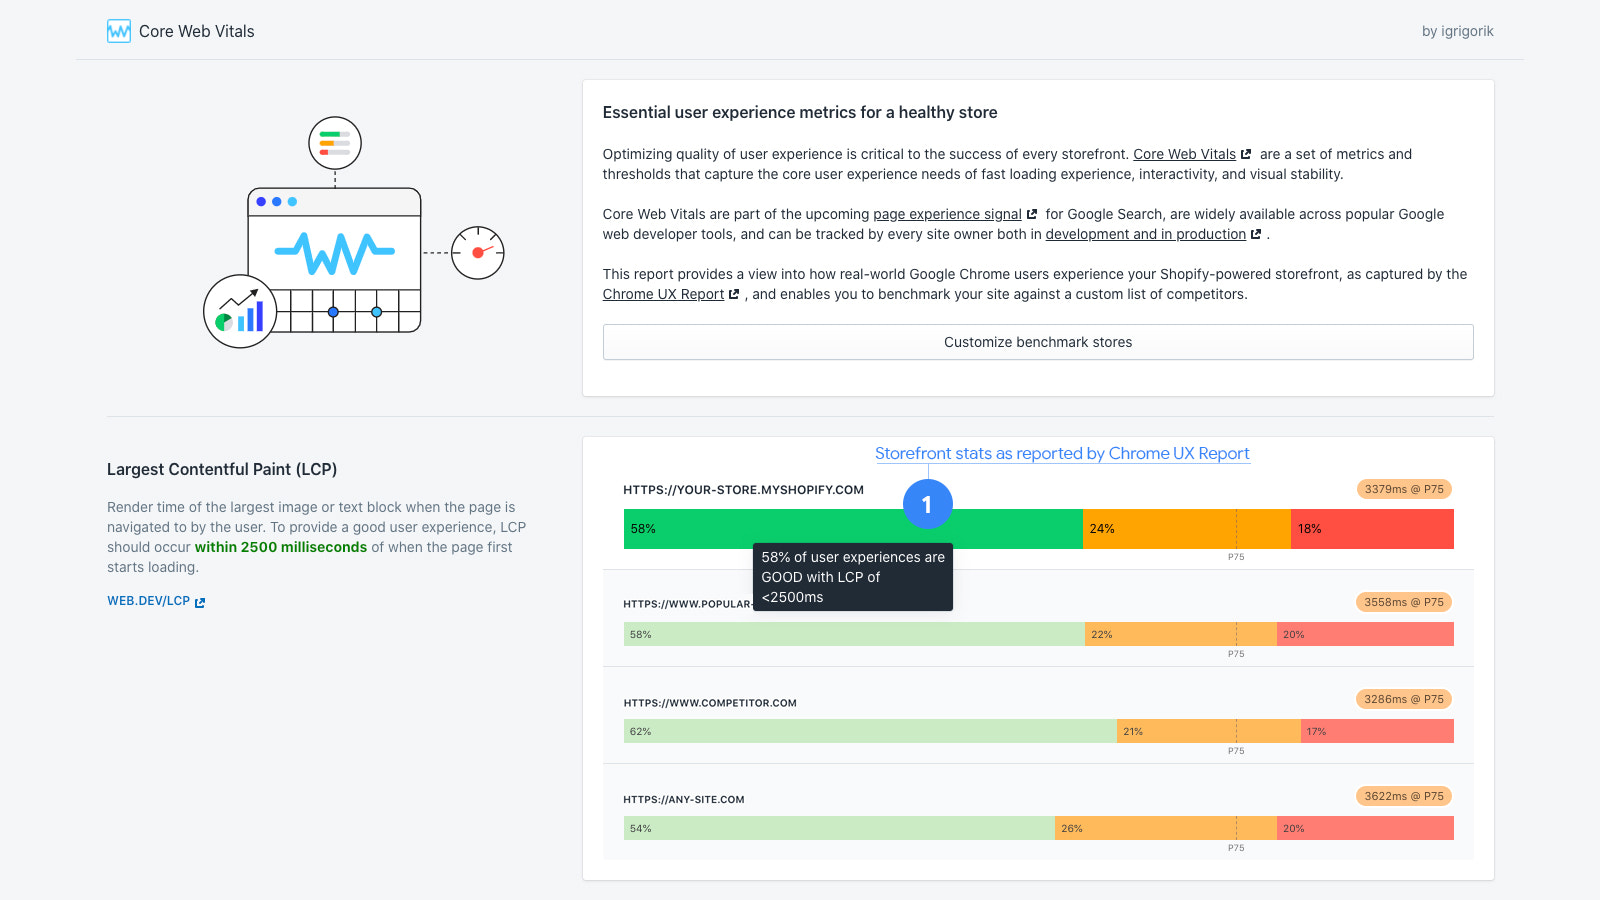 Quickly audit storefront compliance with Core Web Vitals metrics